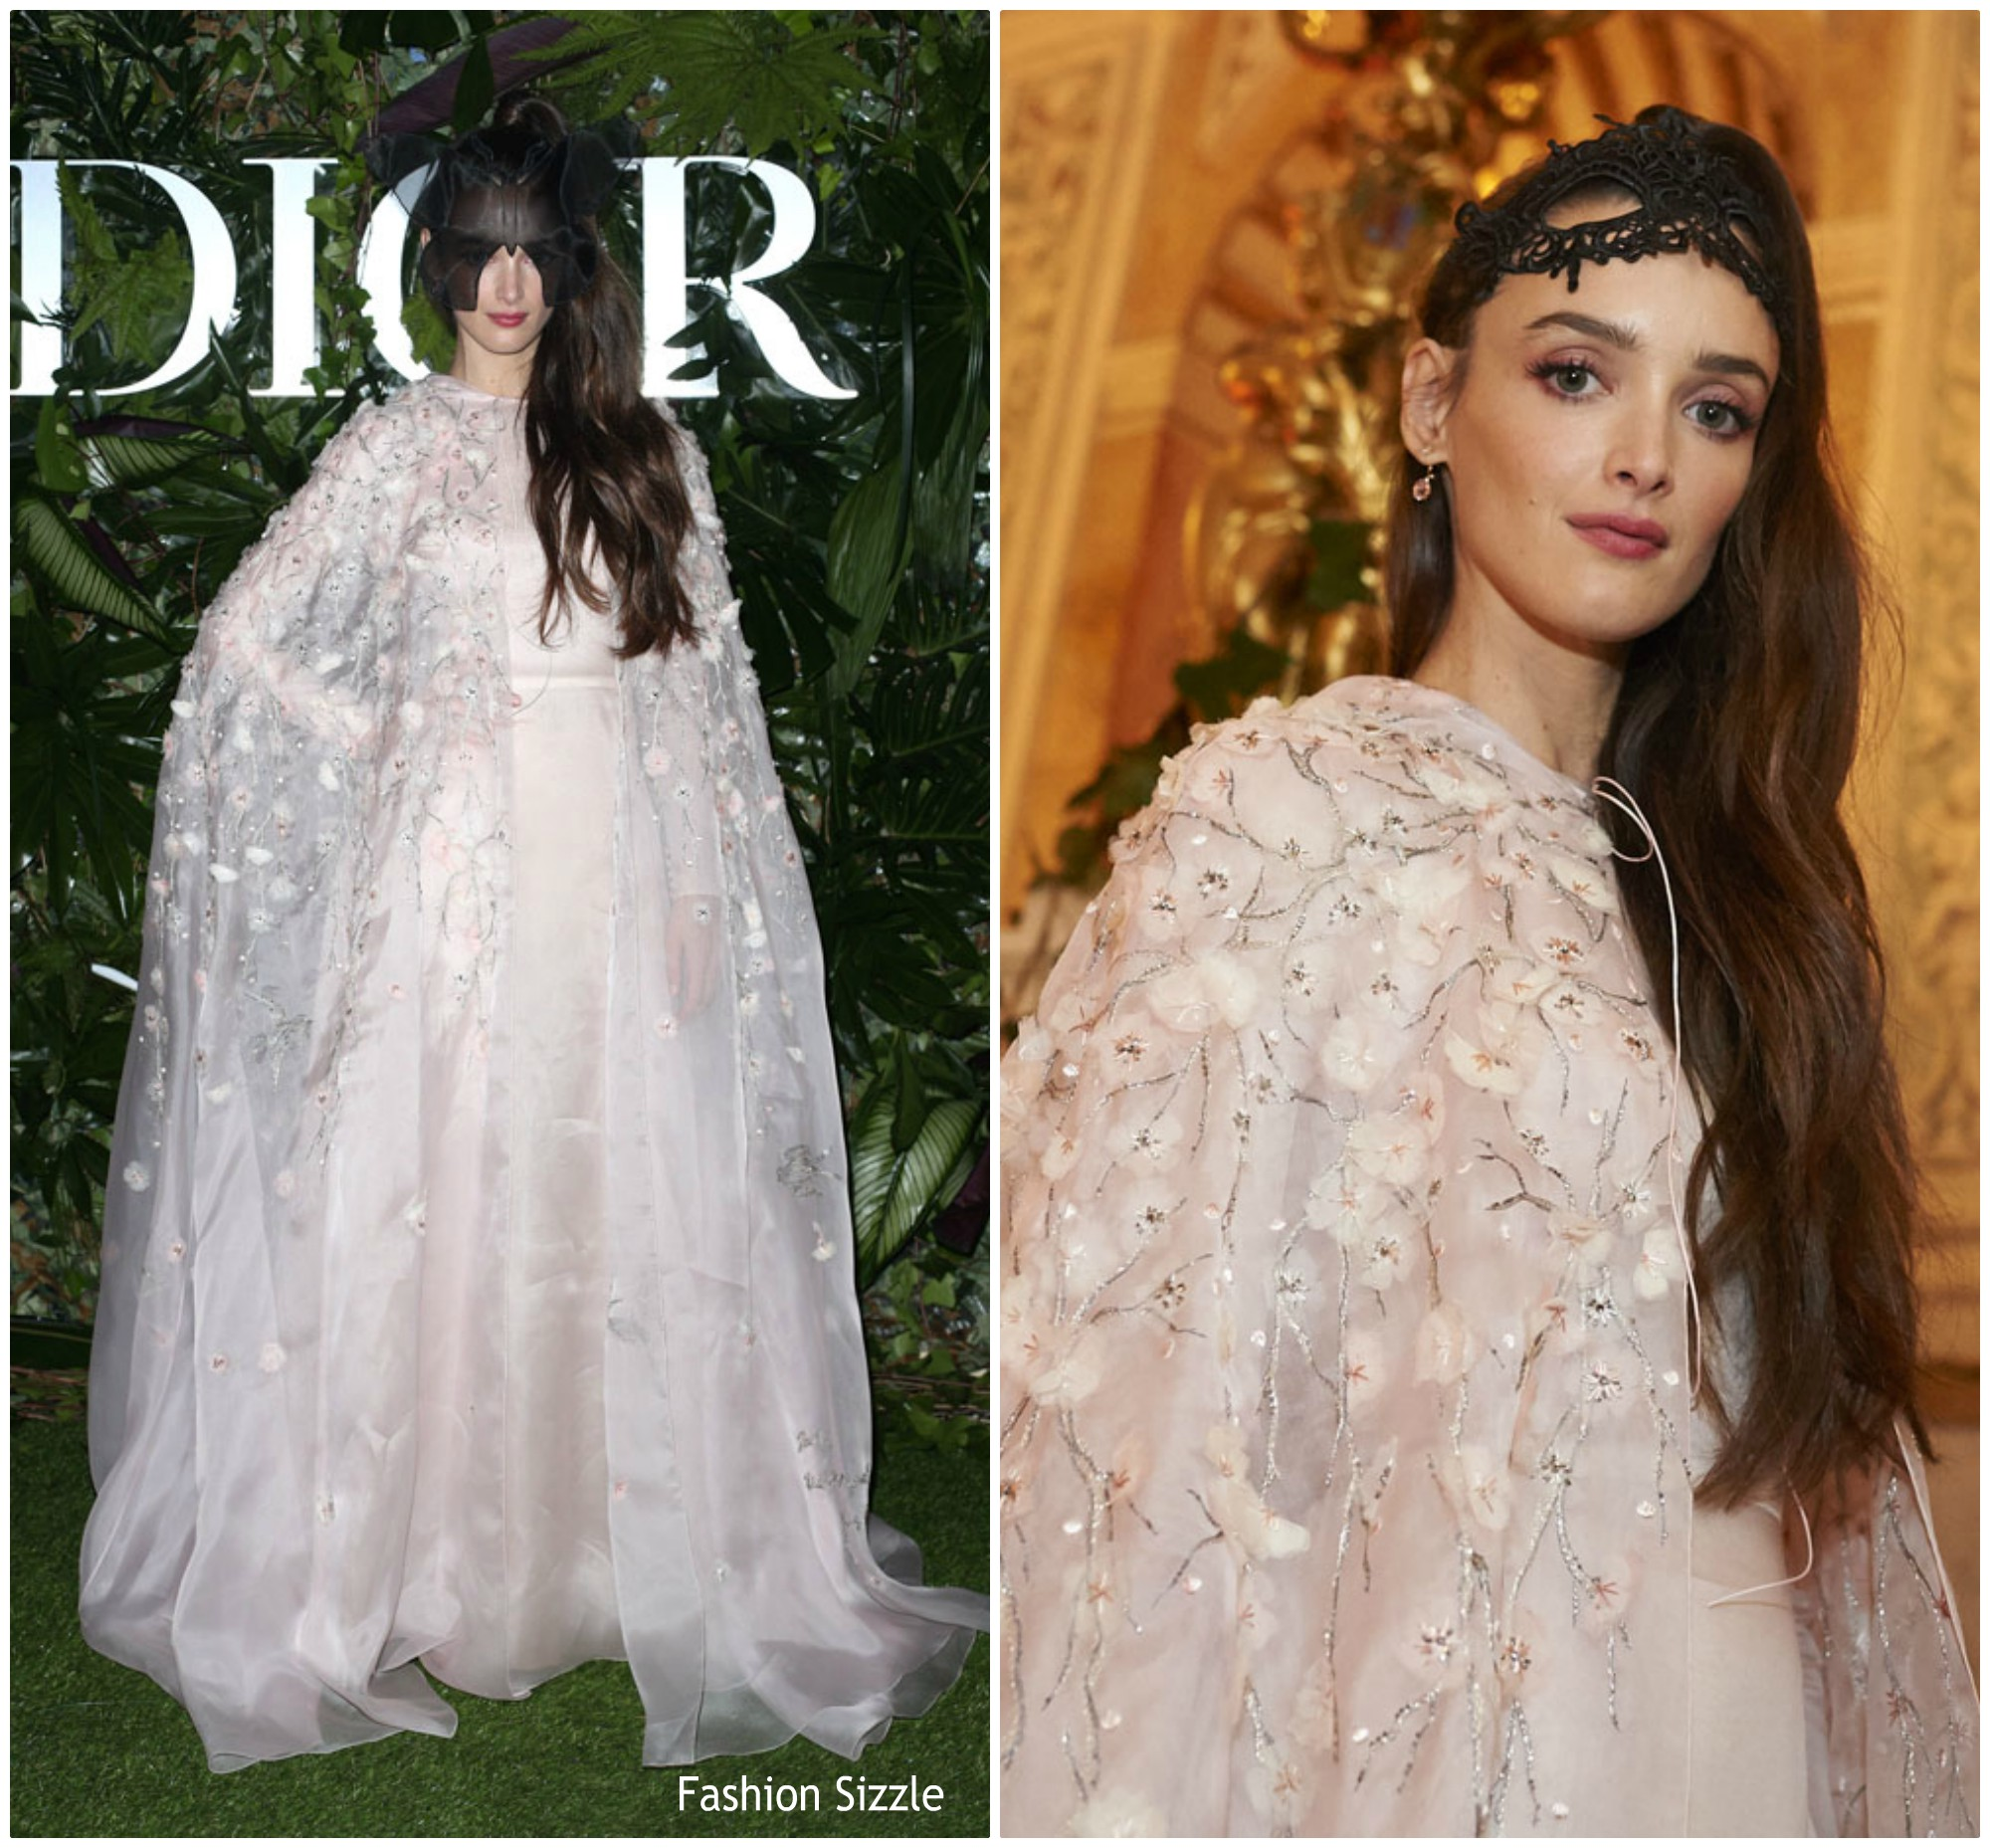 charlotte-le-bon-in-christian-dior-couture-dior-ball